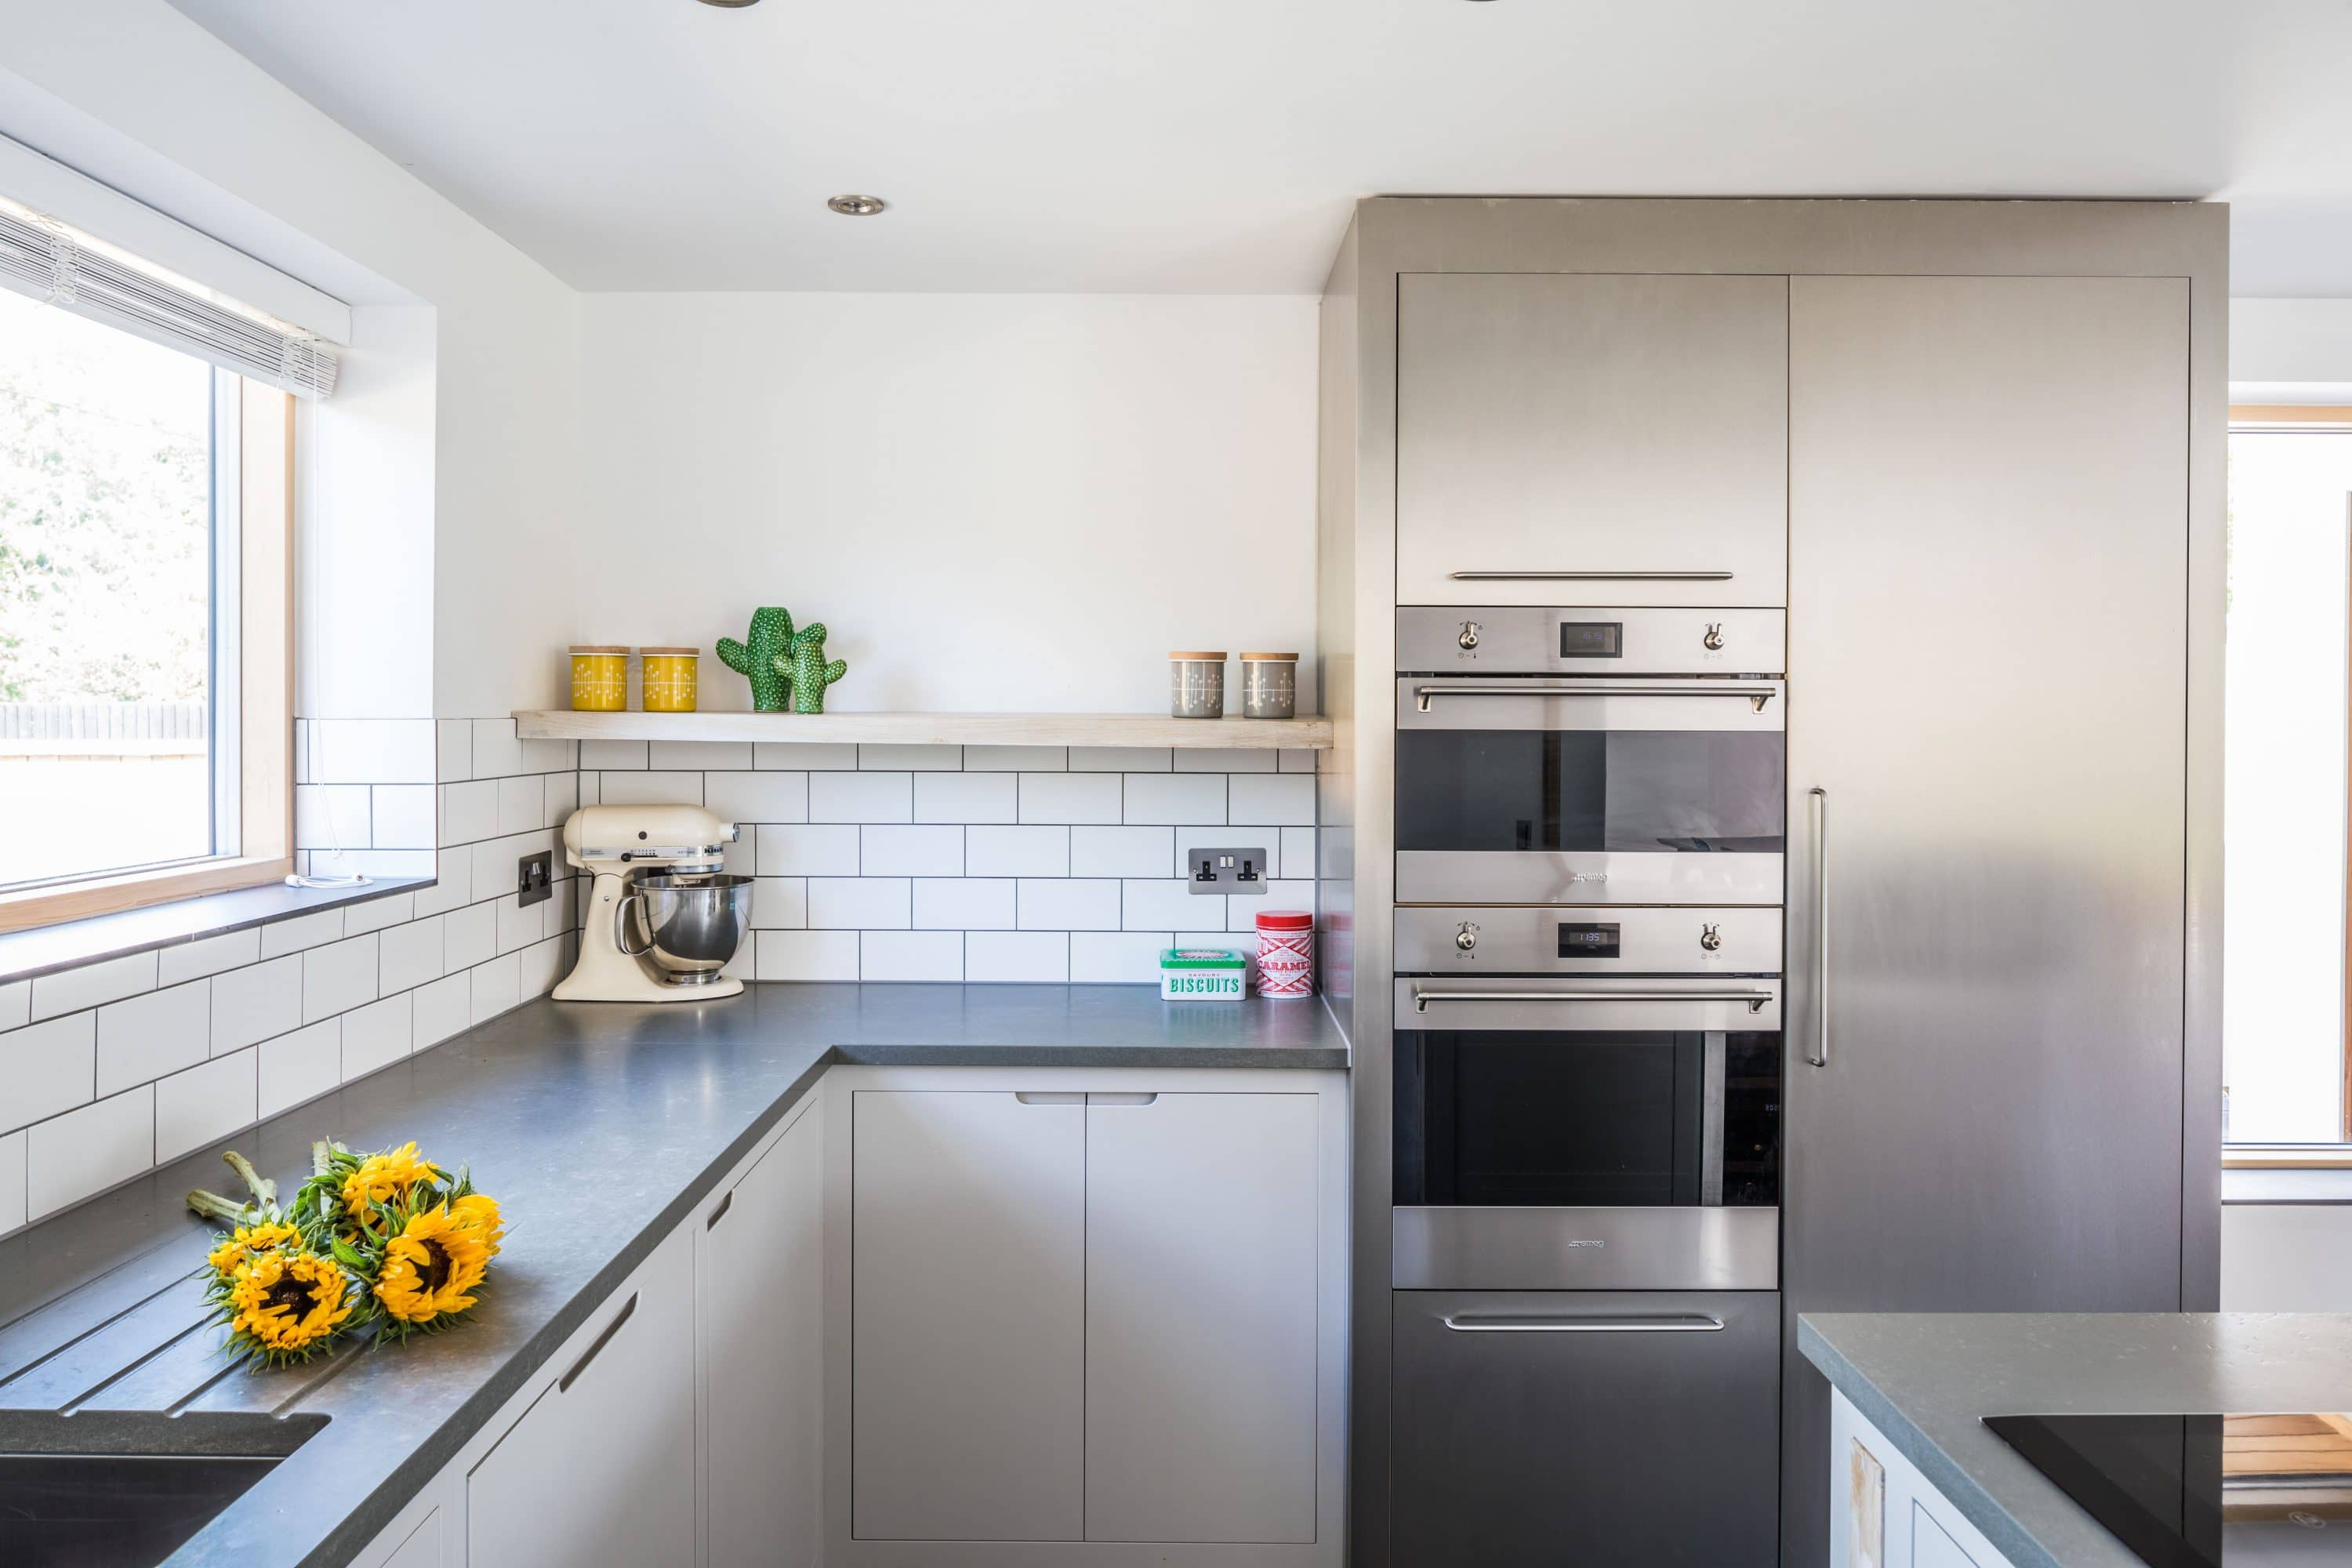 Projects Articles - Sustainable Kitchens